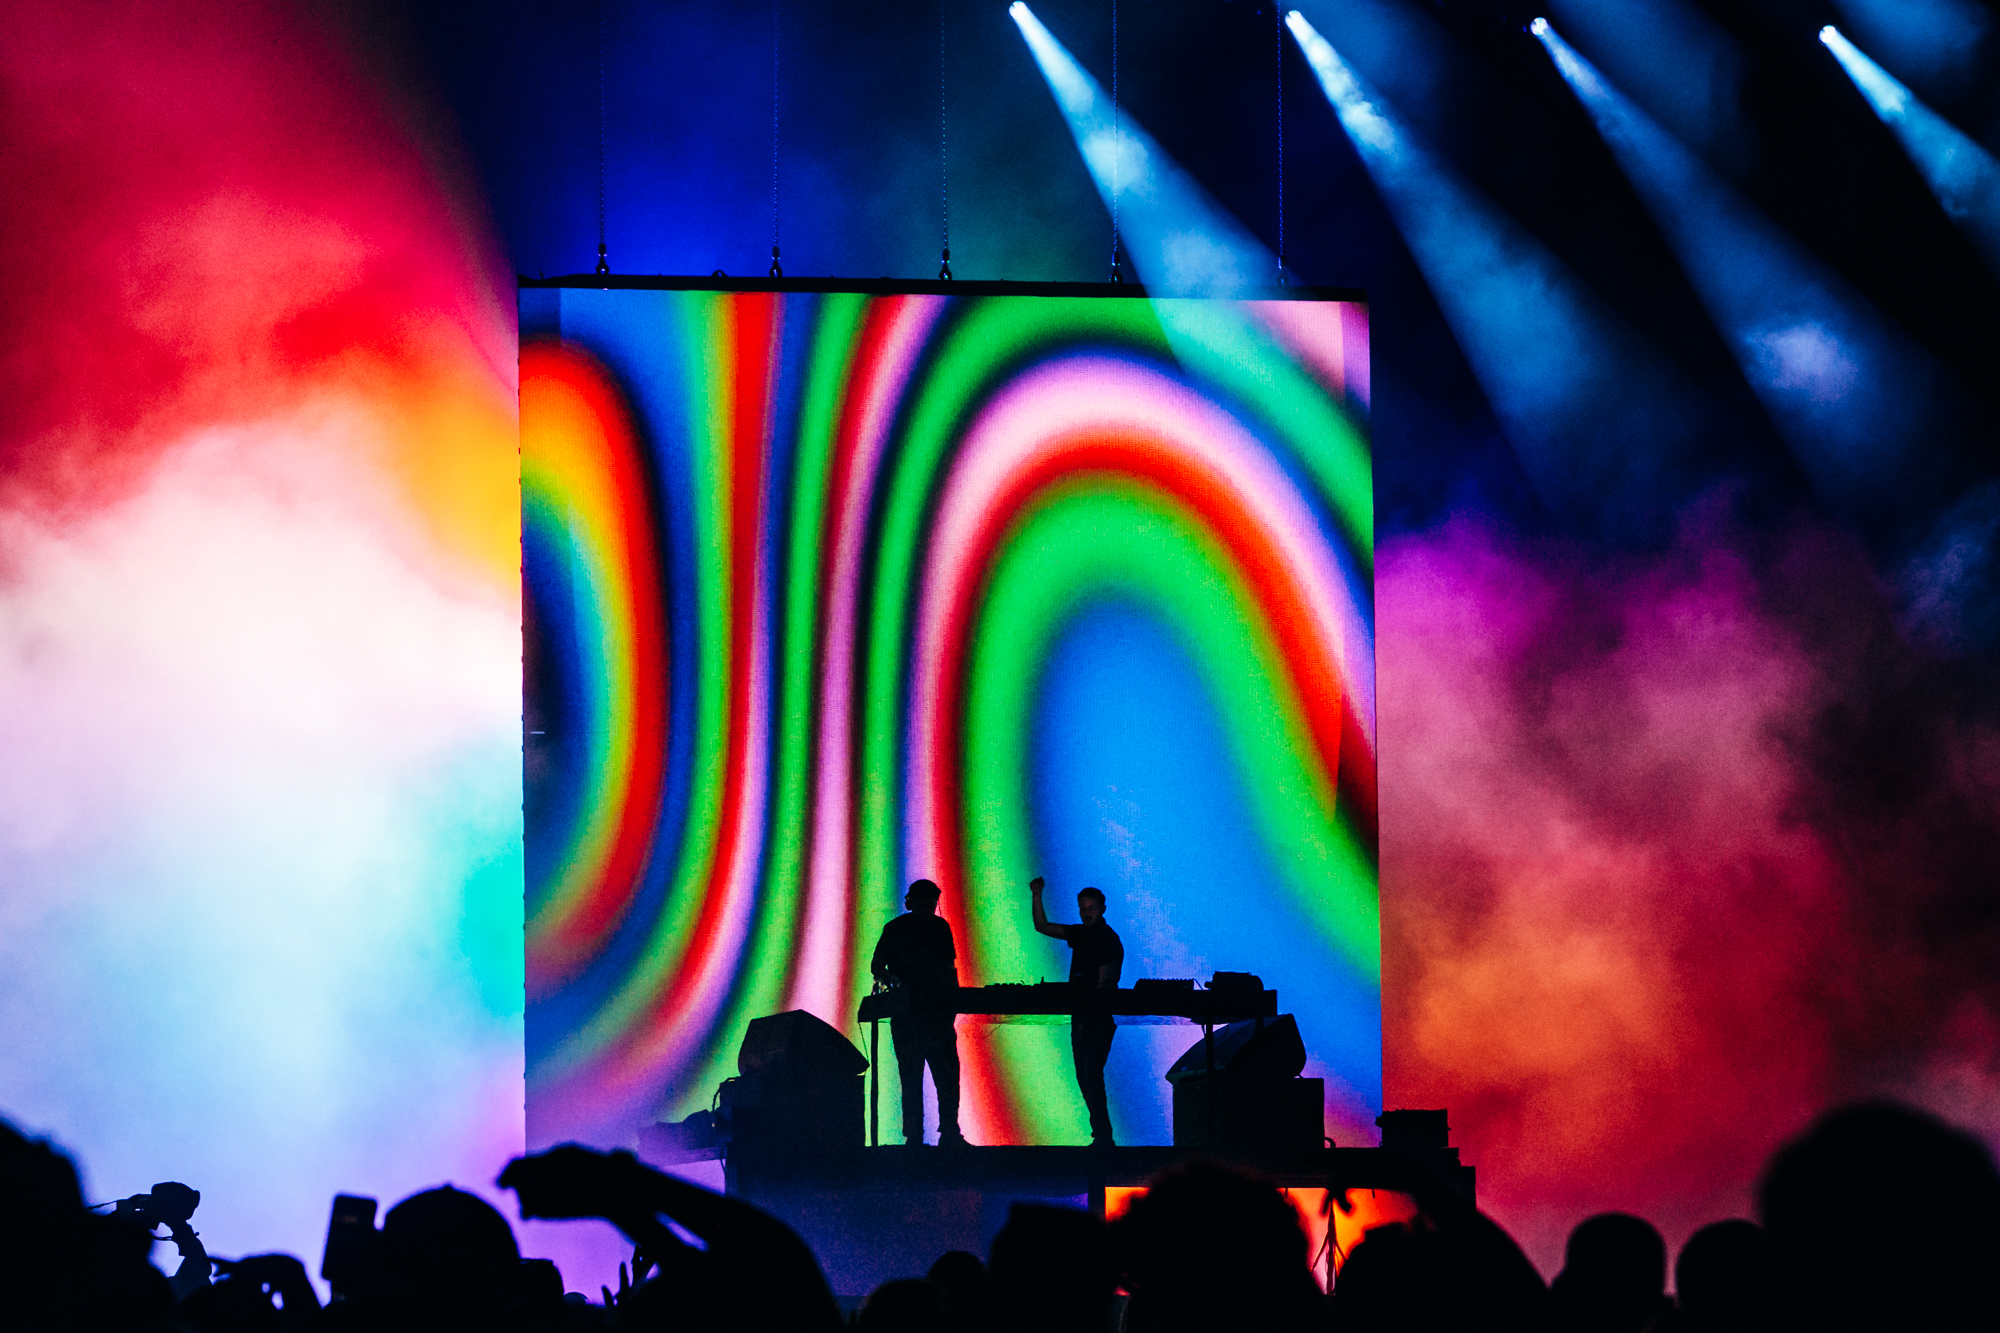 Disclosure at Reading Festival